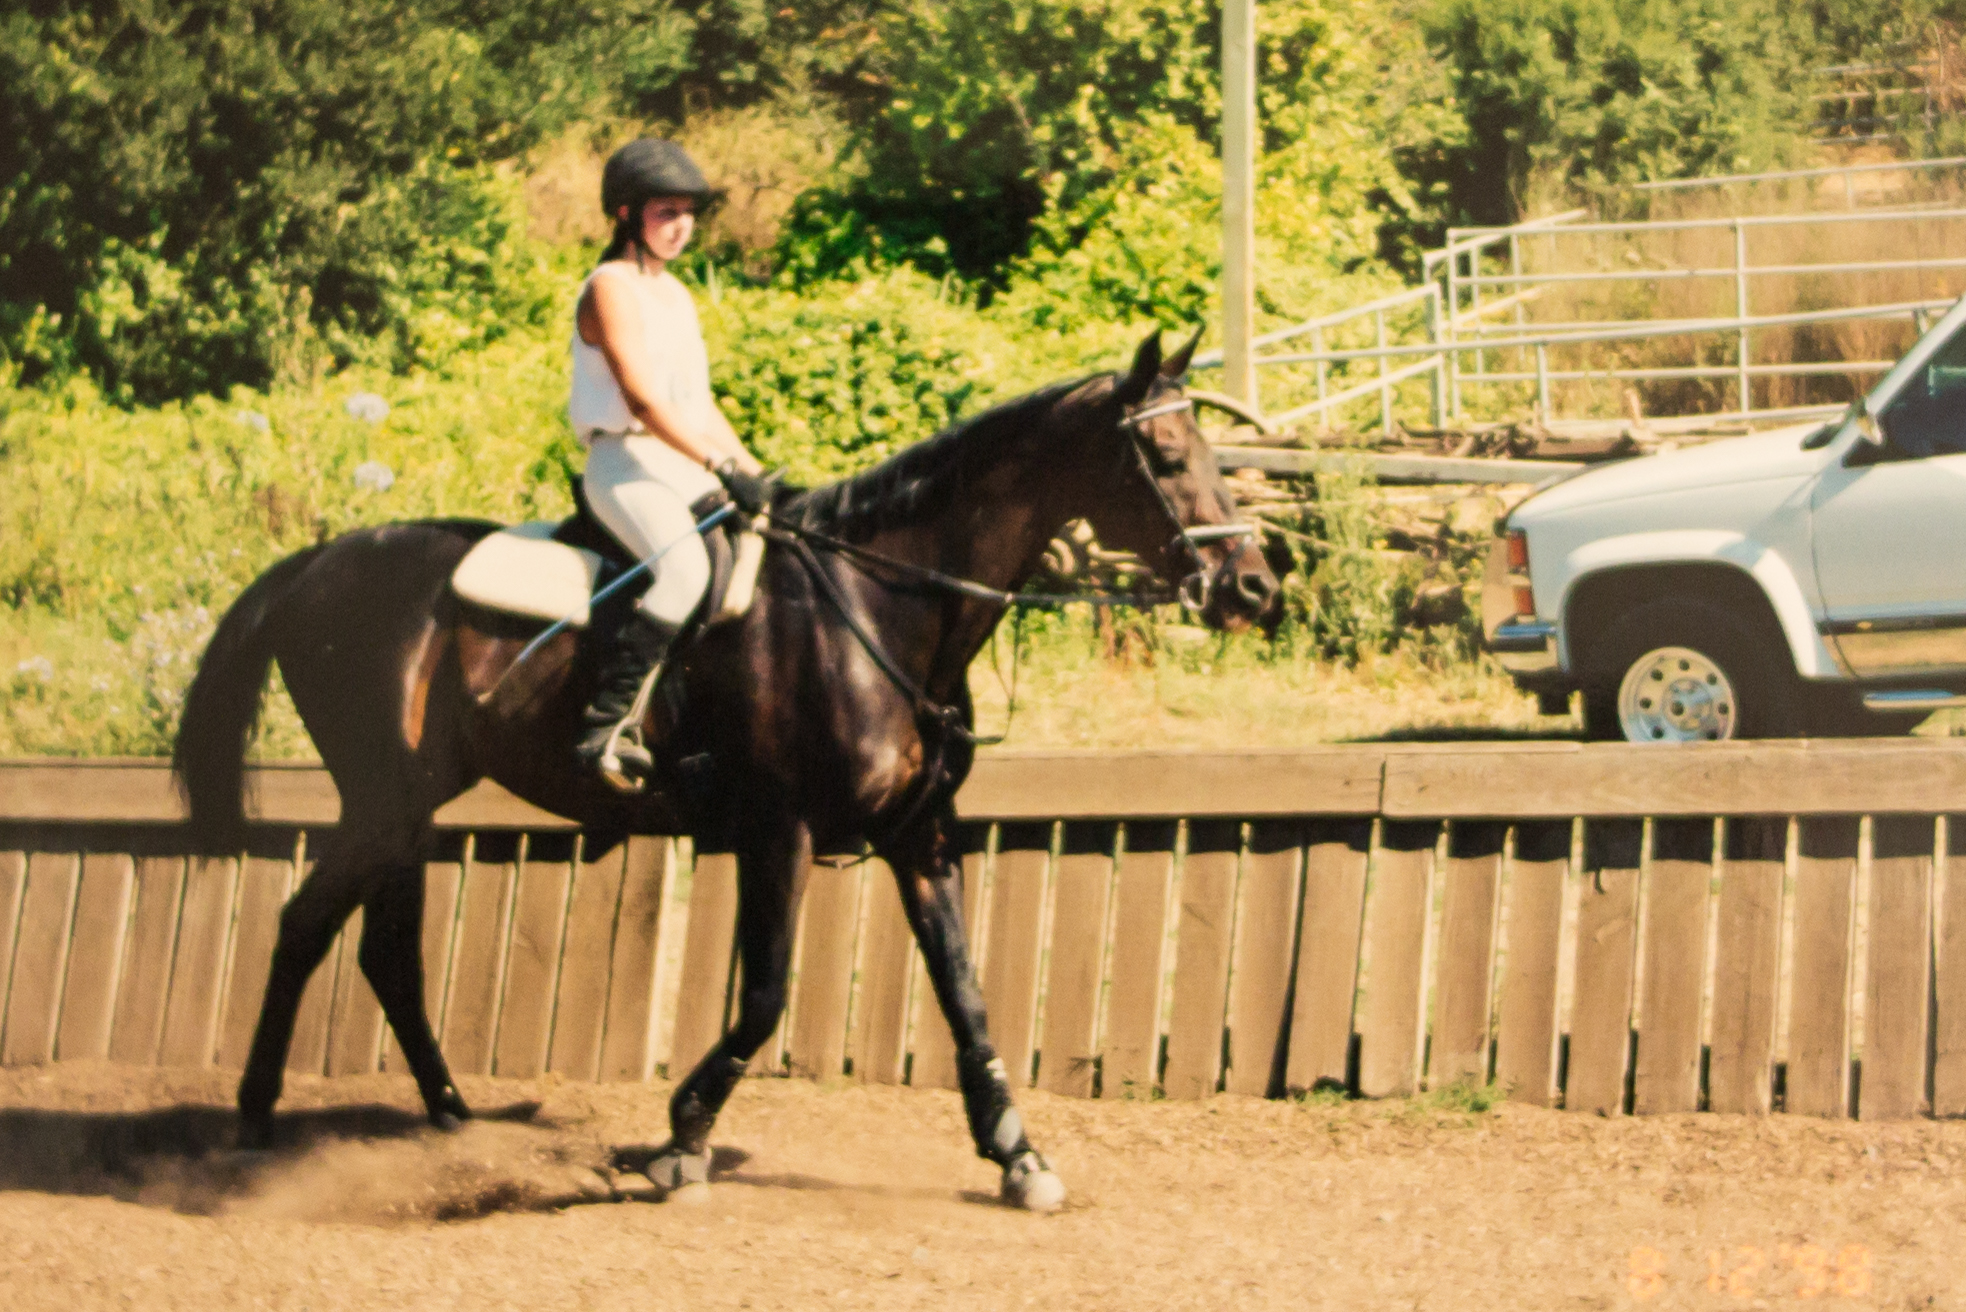 Riding Sid at Garrod Farms in Saratoga, CA